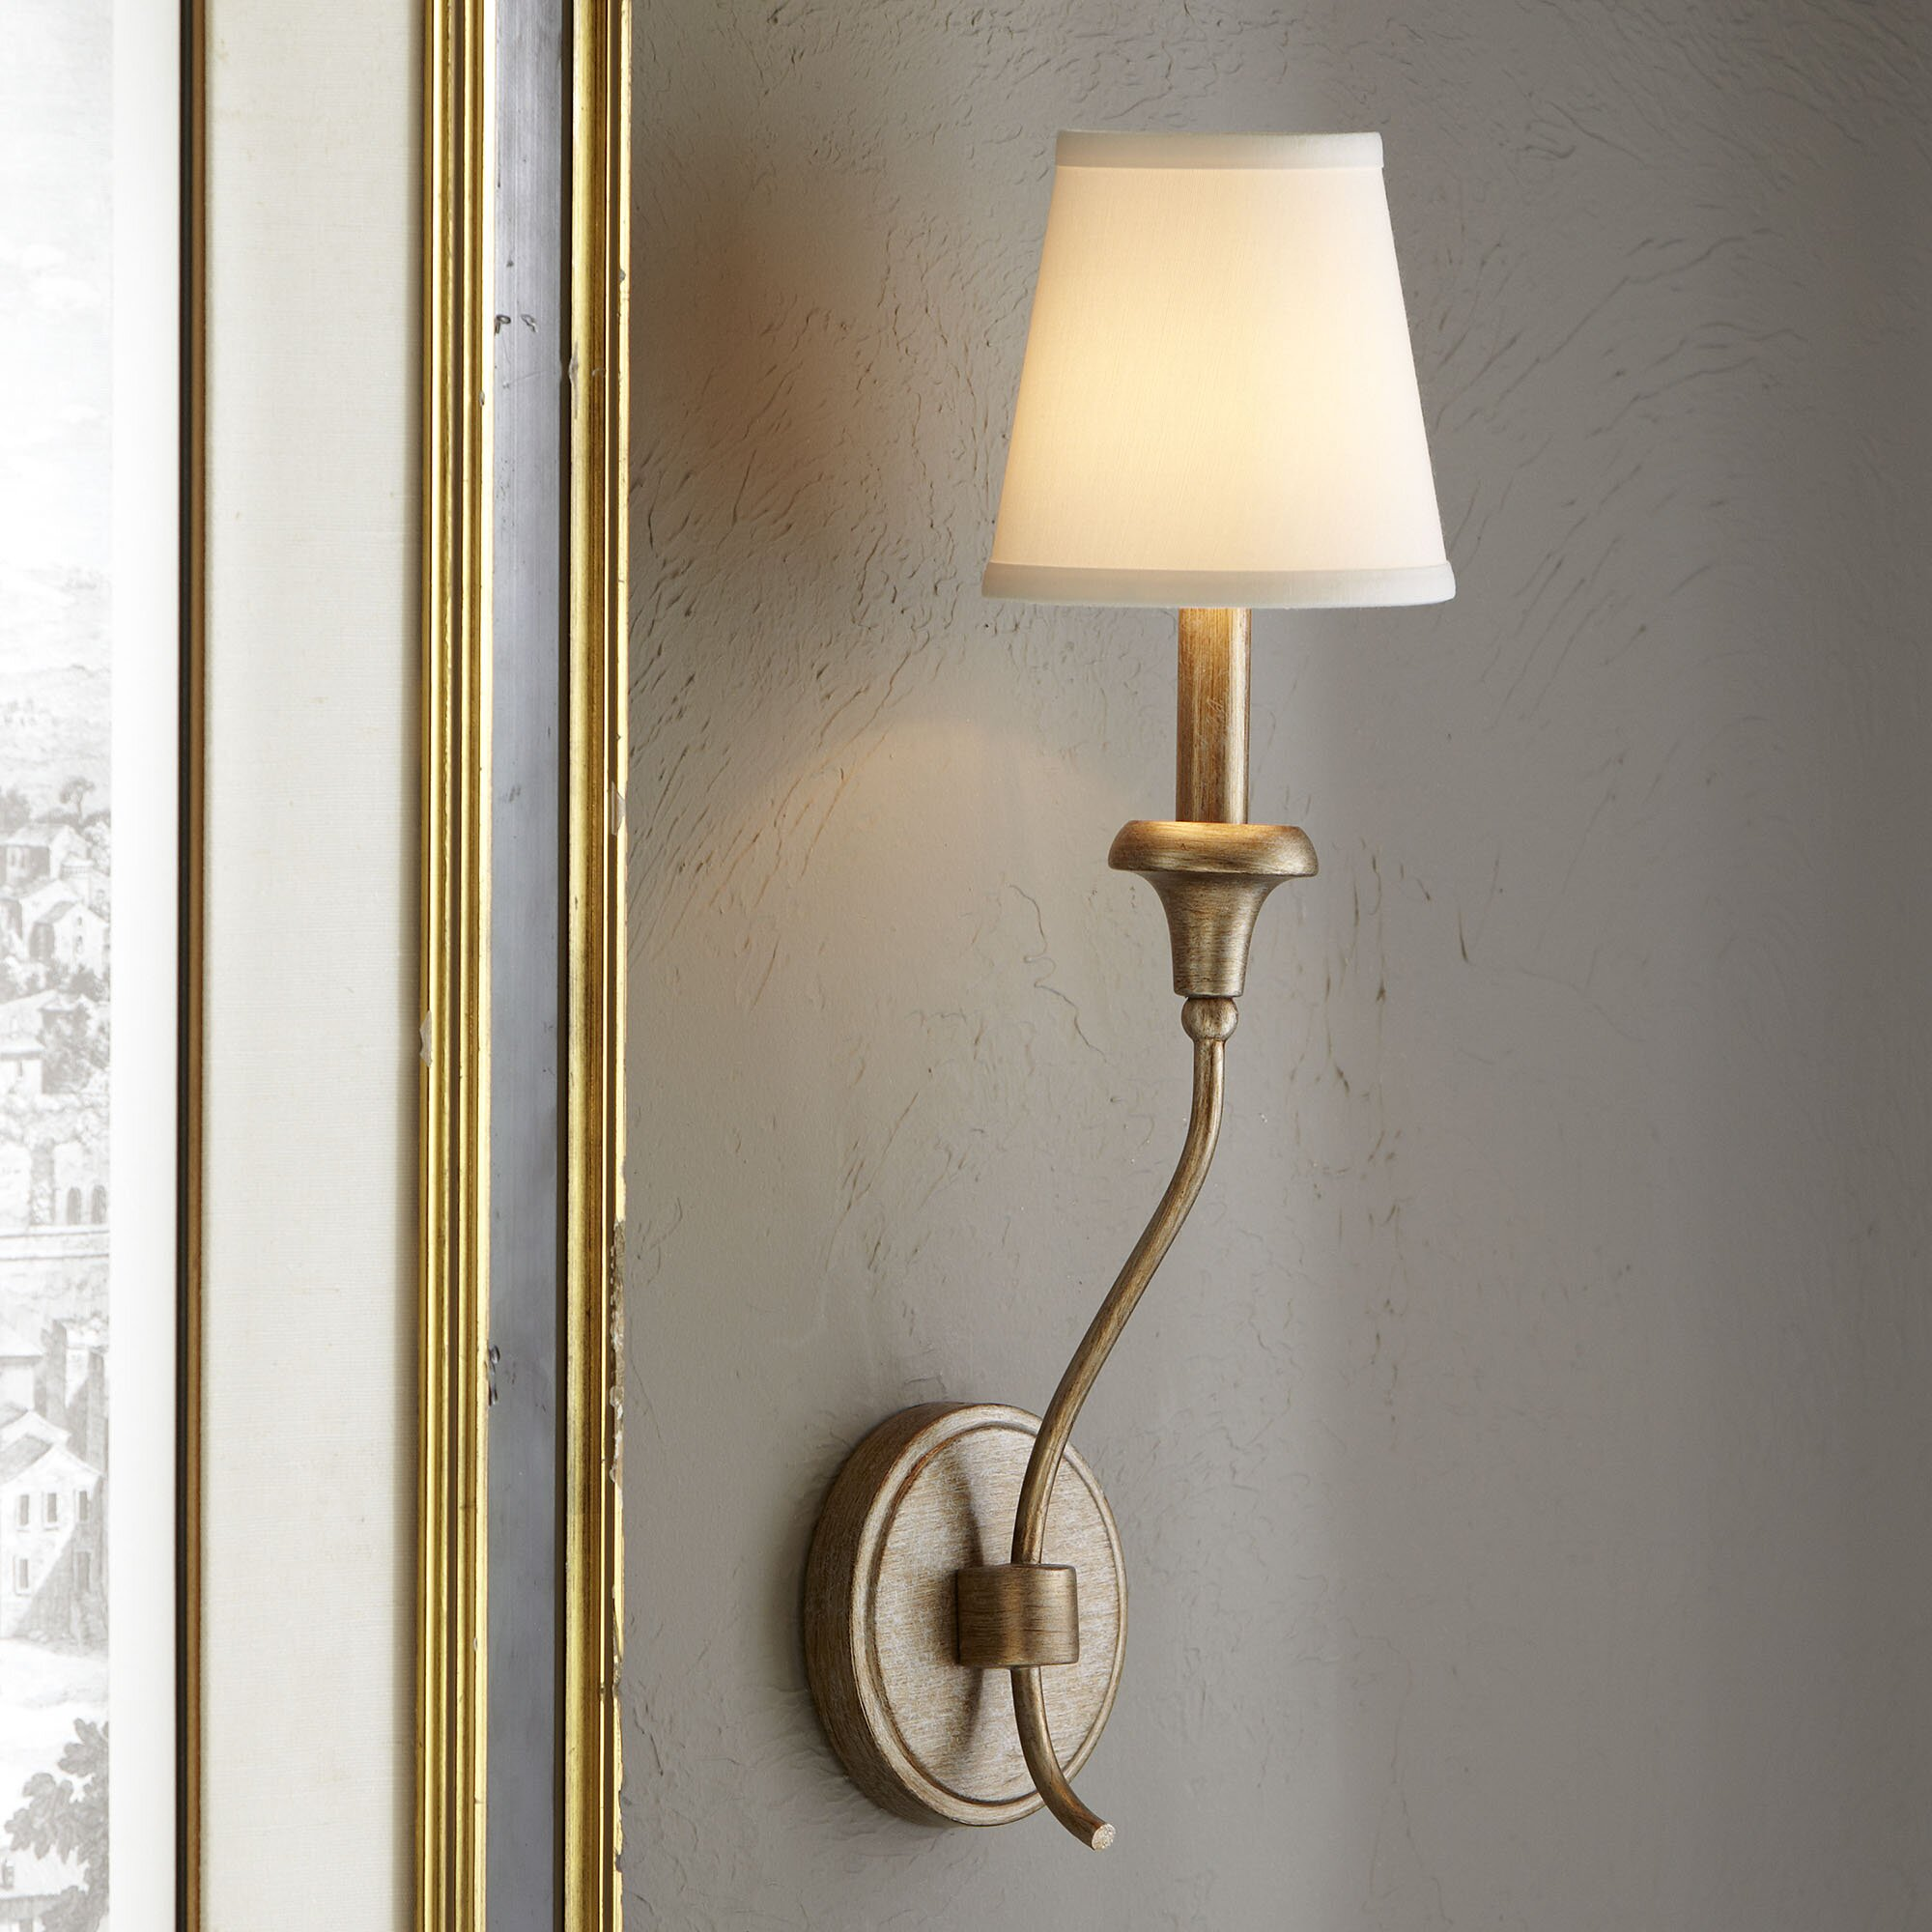 Wall Sconces At Wayfair : Birch Lane Traviston Wall Sconce & Reviews Wayfair